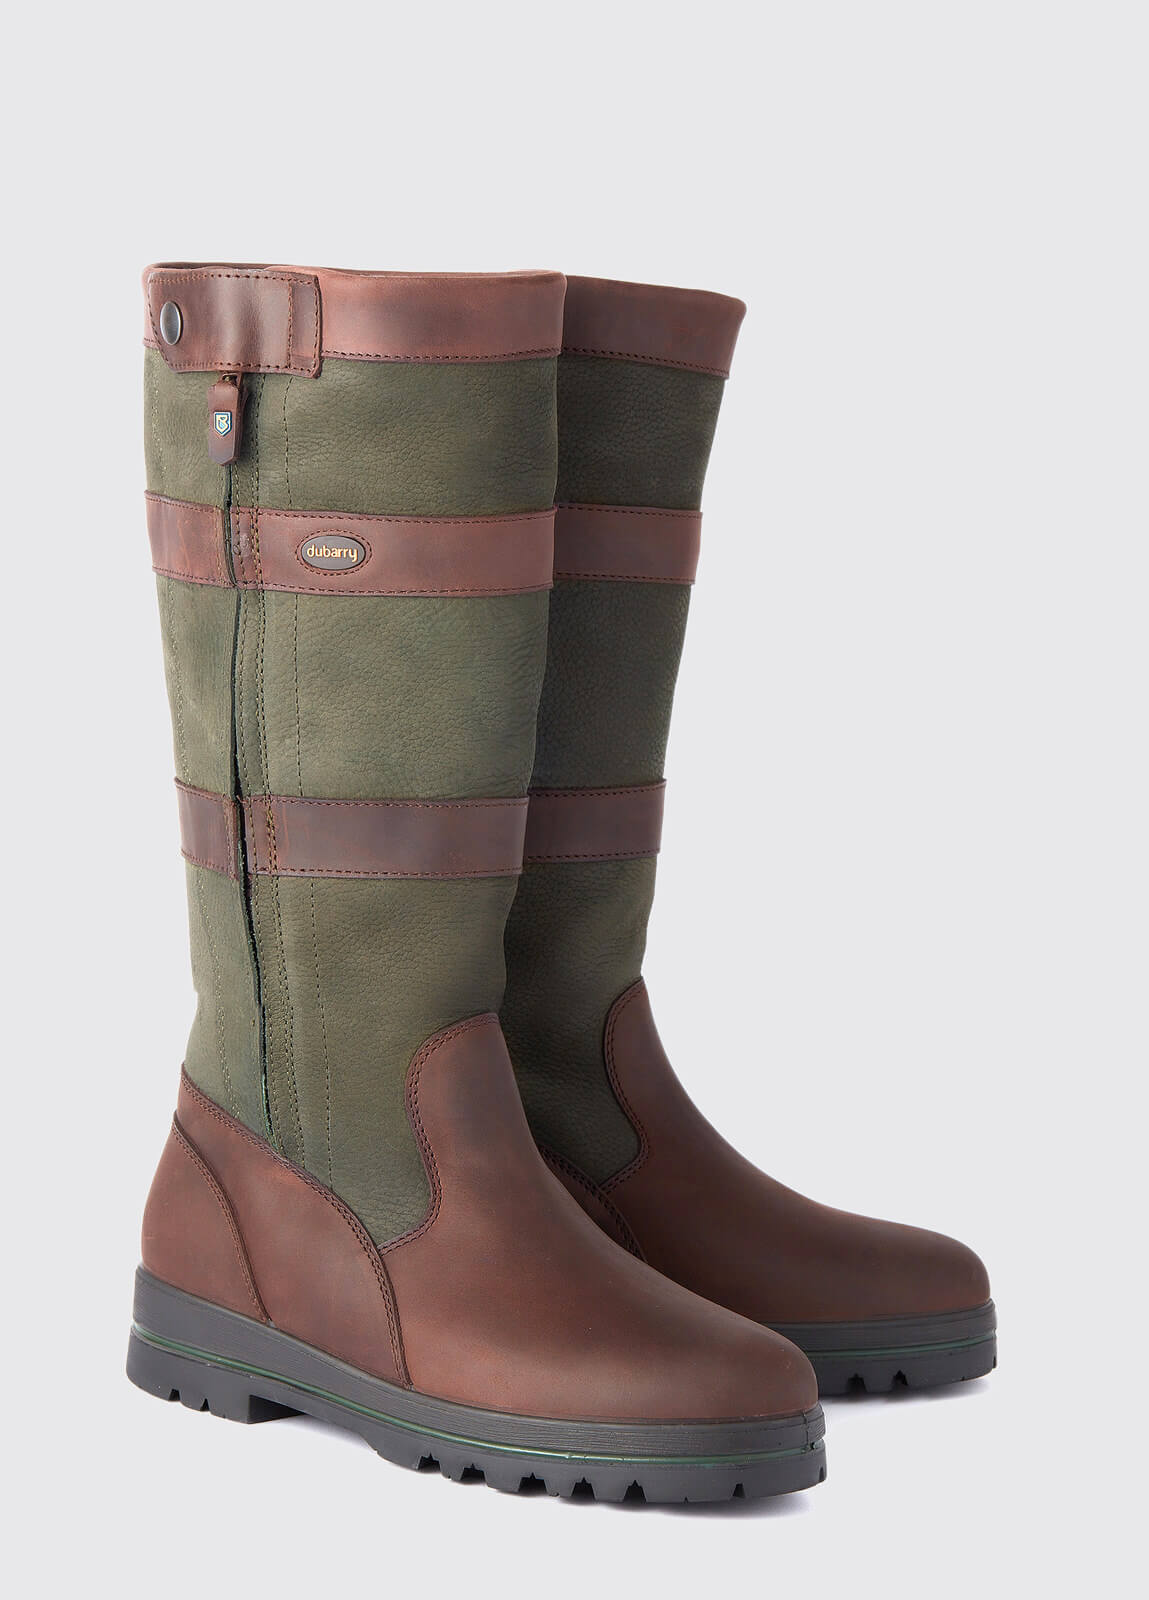 Wexford Country Boot - Ivy